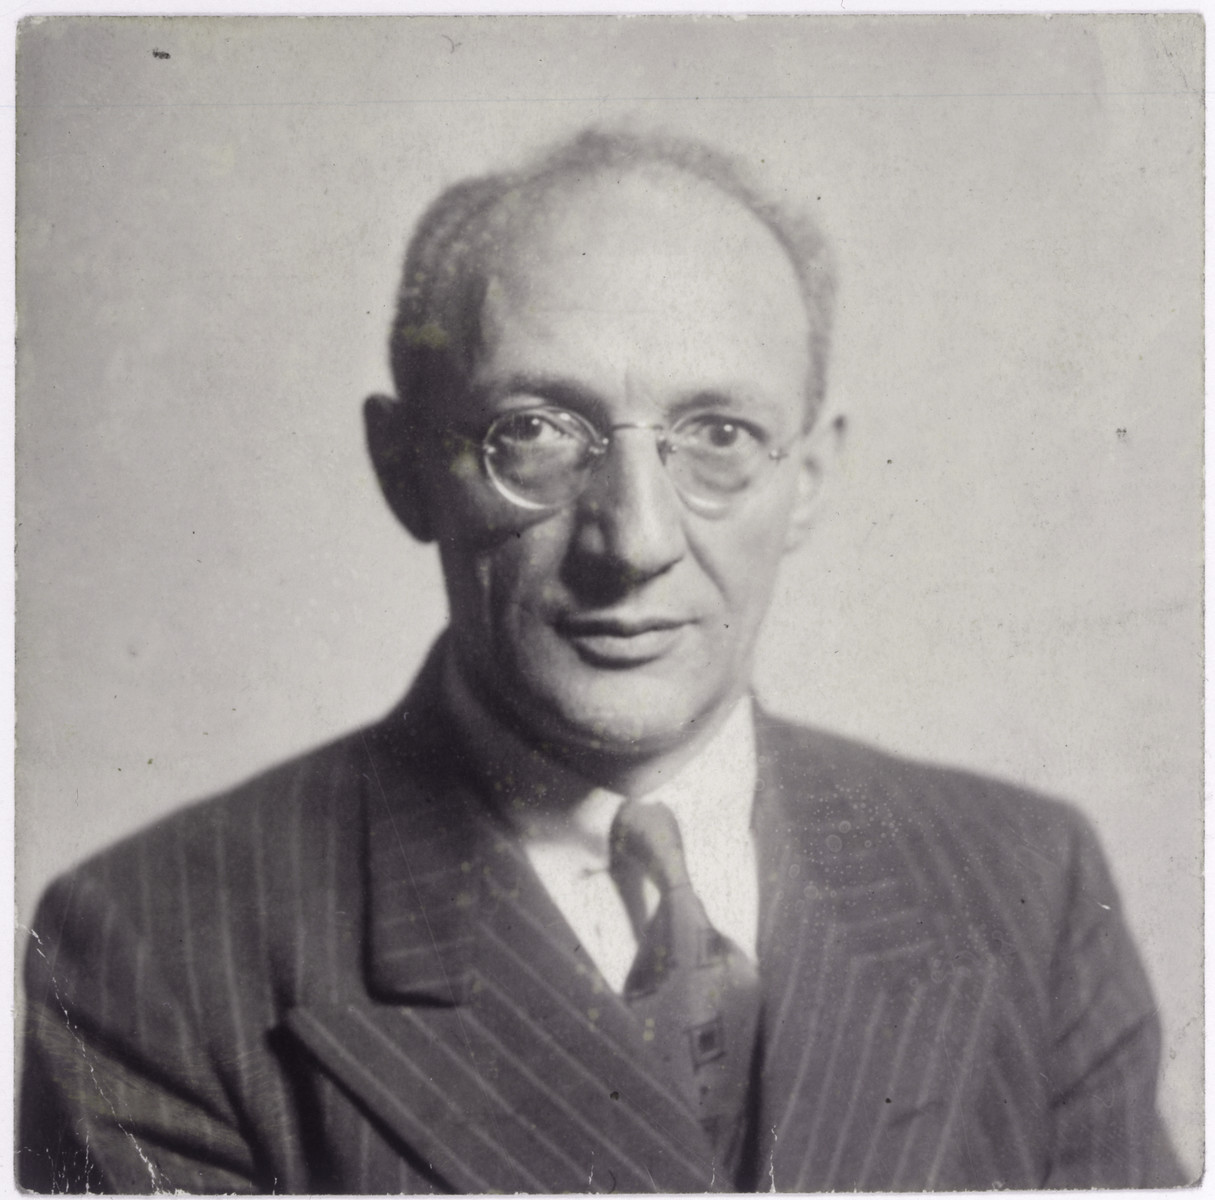 Boruch Szefner, the father-in-law of Markus Nowogrodzki.  Boruch Szefner was president of the prewar Yiddish  Writers' Union in Warsaw and parliamentary correspondent  for the Folkszeitung.  He was evacuated to Vilna with the Polish parliamentary staff and was on the Jewish Labor Committee list to receive a U.S. visa.  However, after the Soviet take-over of Lithuania, he had to hide under the assumed name of Braude because he was sought by the N.K.V.D.  He came to Japan on a Sugihara visa and went from there to the United States where he was a staff writer for the Jewish Daily Forward.  His wife, Dr. Helena Szefner, taught in the underground high school of the Warsaw ghetto and worked in the Szulc factory  before escaping to the Aryan side.  She survived the war and joined her husband in New York.